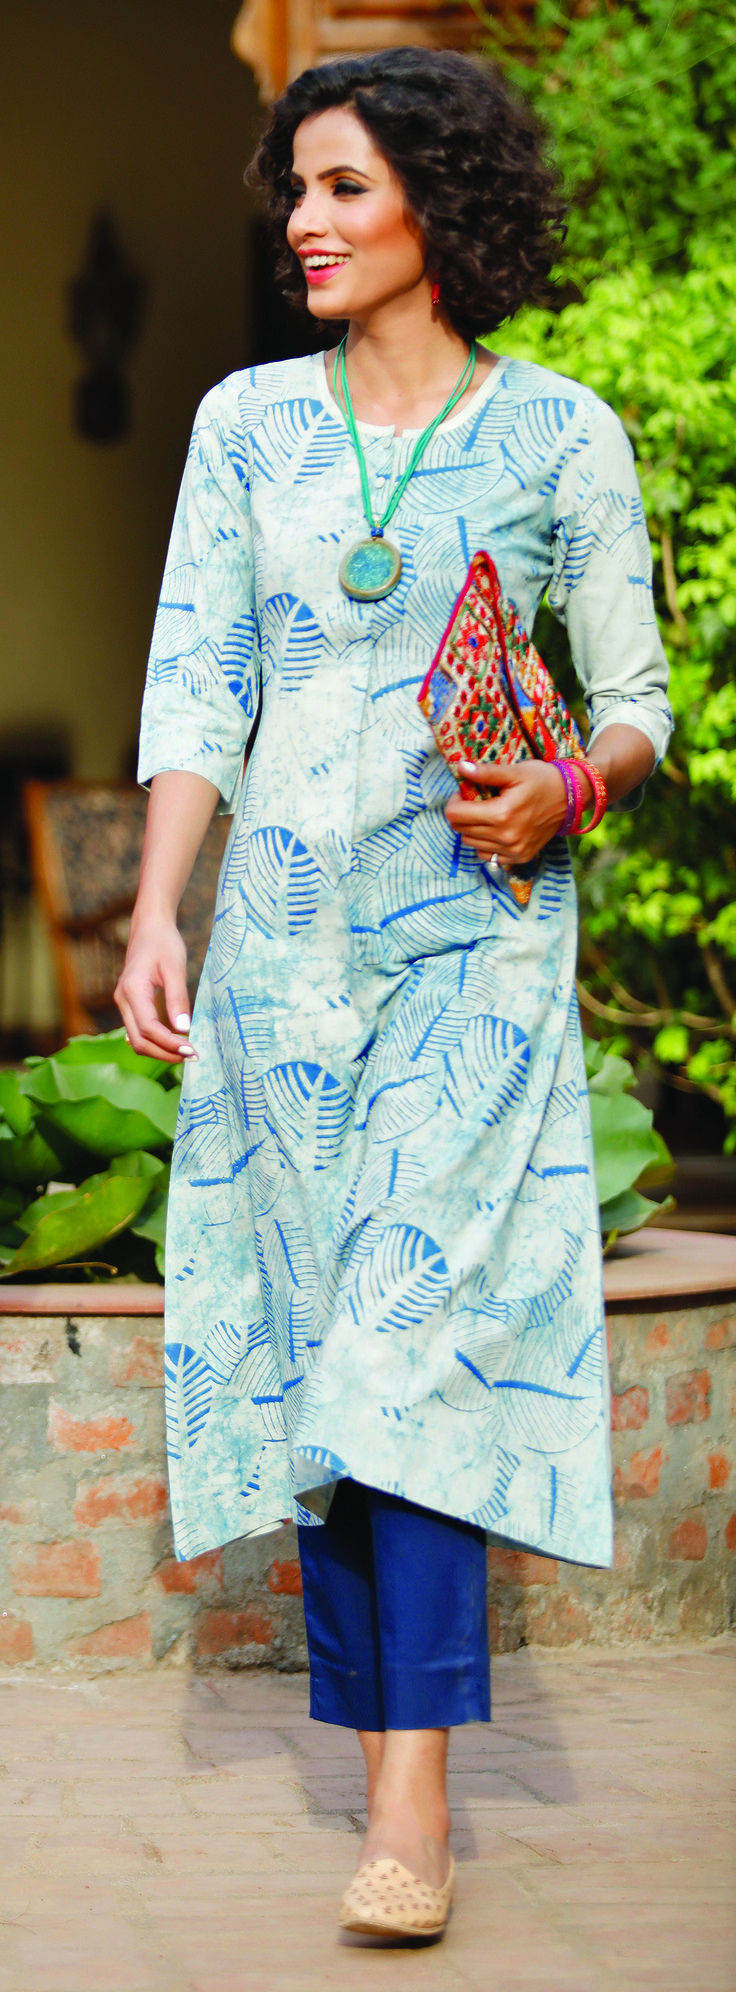 #Indigo #Kurta #Cotton #women #fashion #Print #leaf #embroidery #clutch #ceramic #neckpiece #jewellery #Fabindia